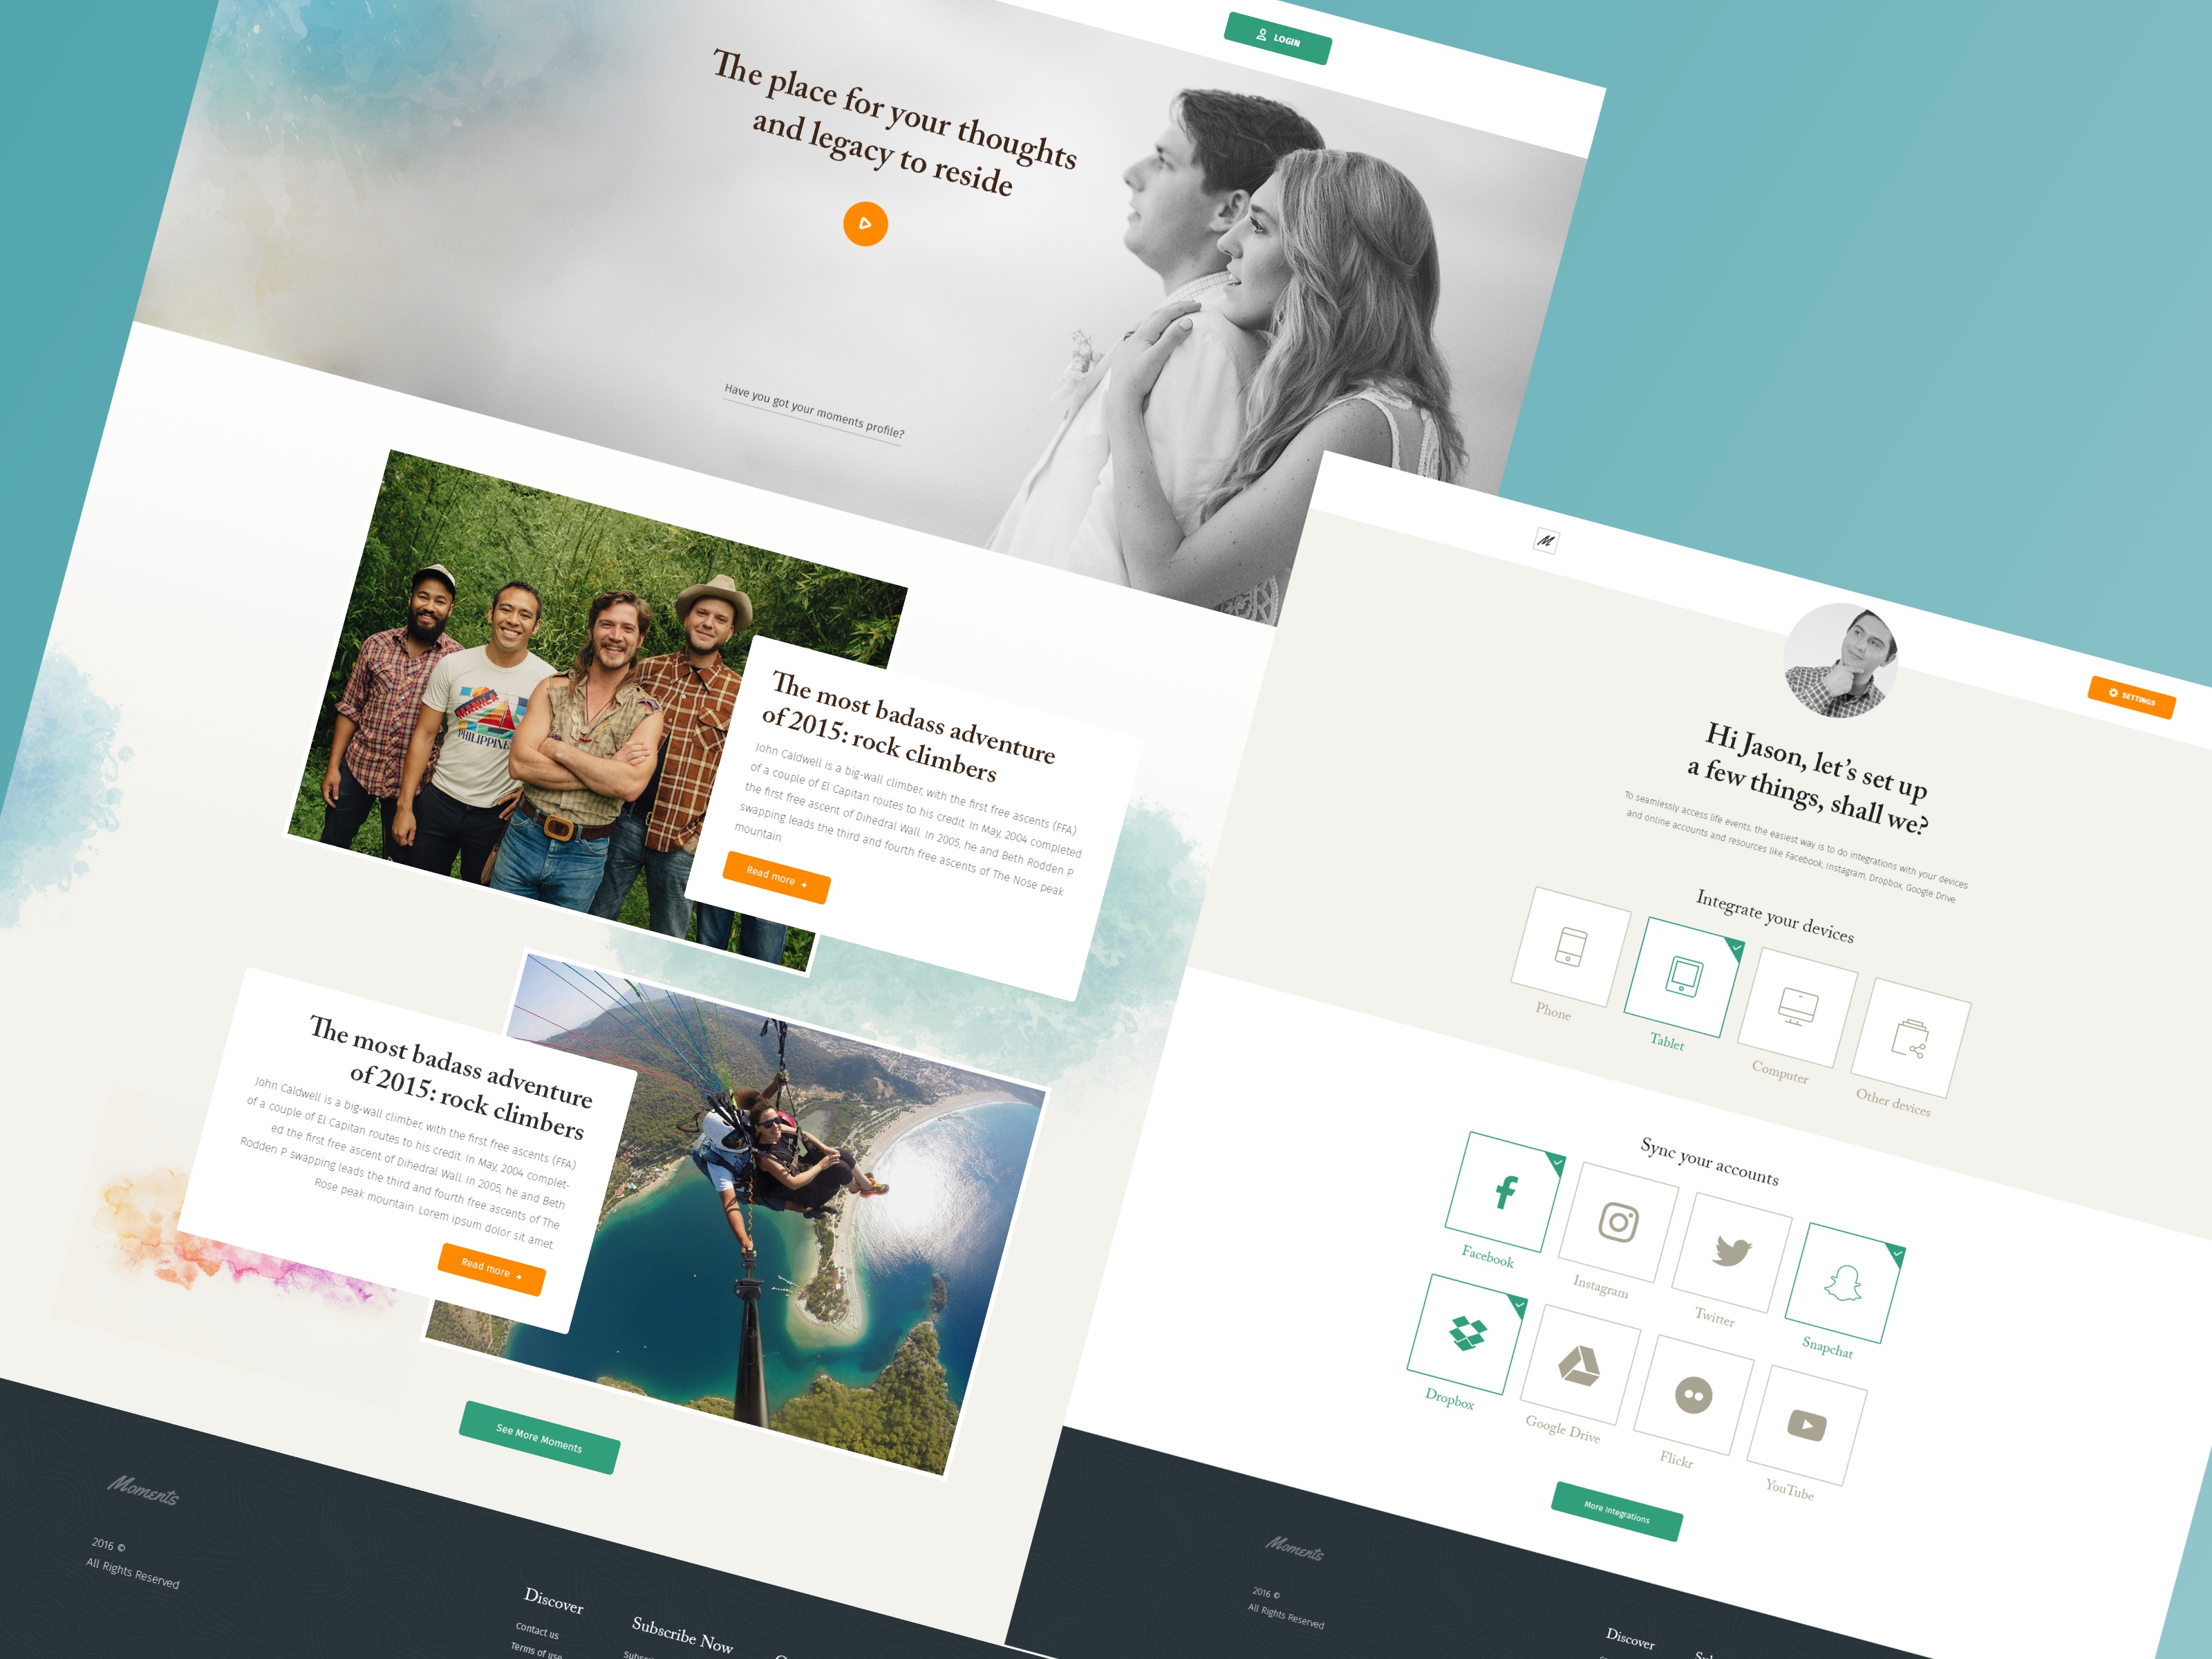 Moments - Website Design Case Study